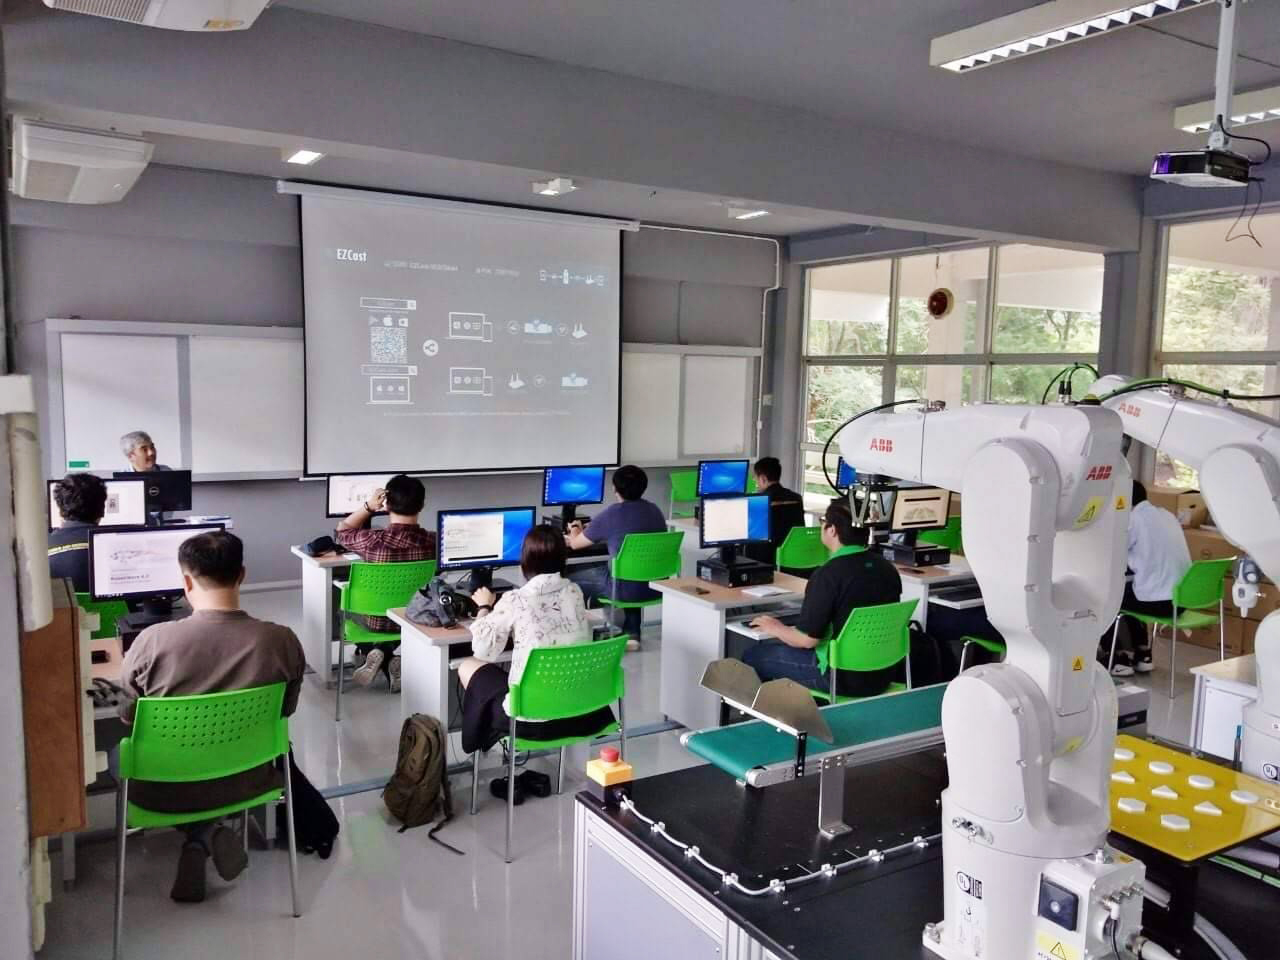 The training programs have been offered to the students and those who are interested in industrial robotic applications